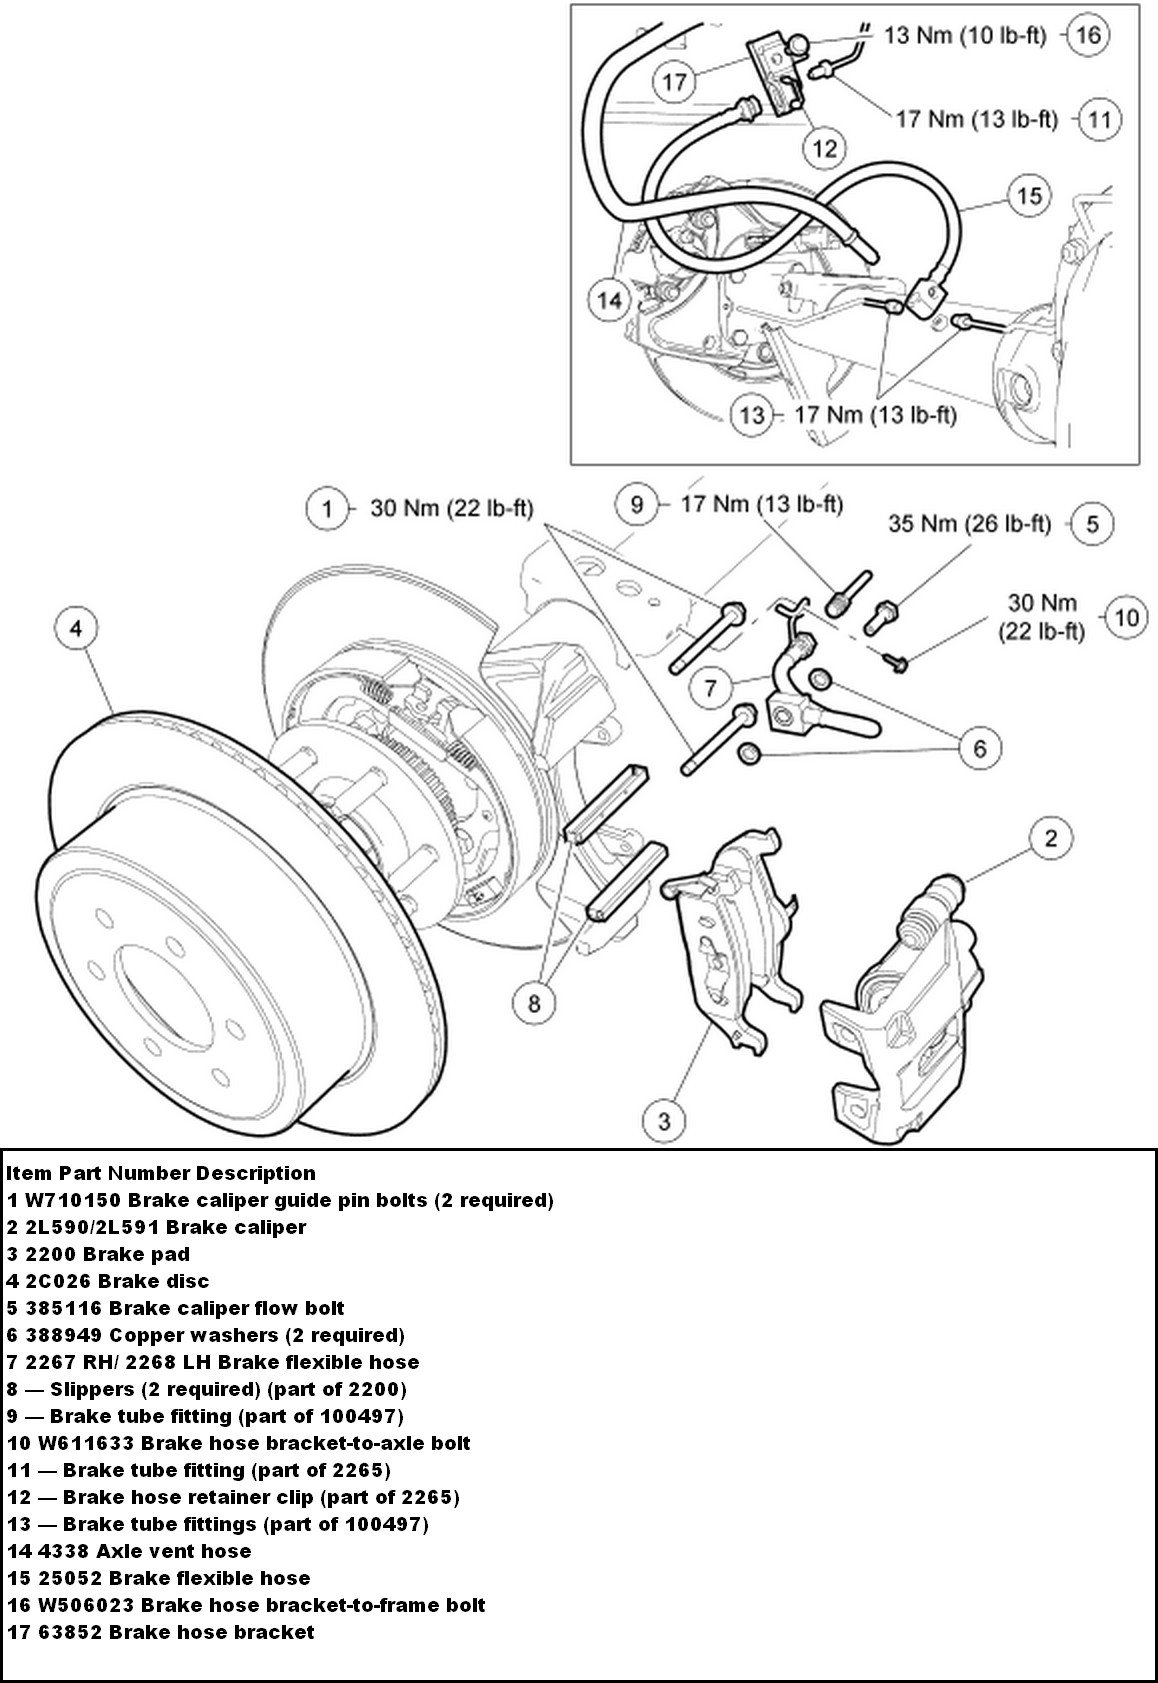 ford f 150 brakes diagram i need to replace the rotors and pads on my 2006 f150 2wd ...